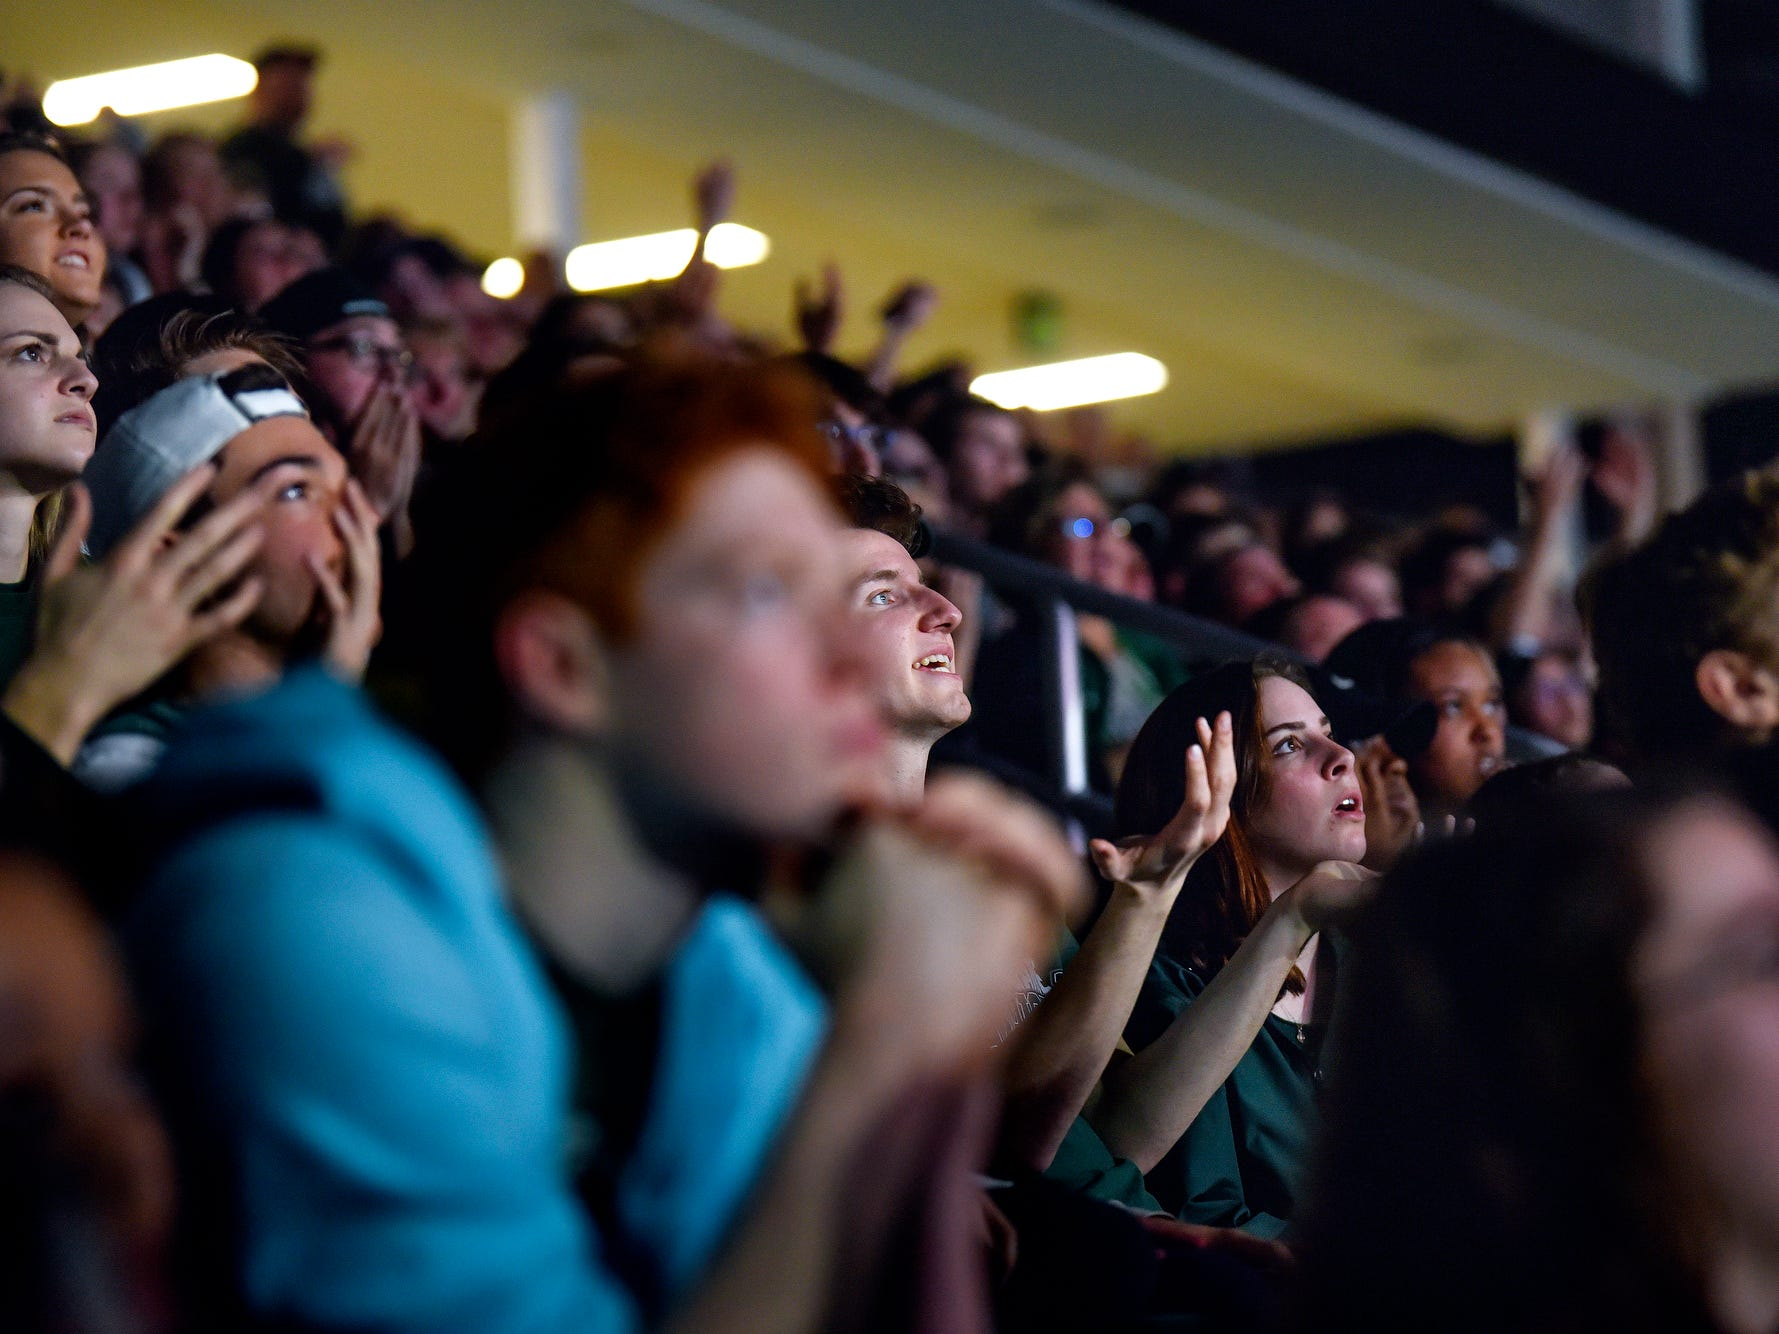 Fans react during the second of half the Michigan State Spartans' Final Four game against Texas Tech on Saturday, April 6, 2019, at a watch party at Munn Ice Arena in East Lansing.